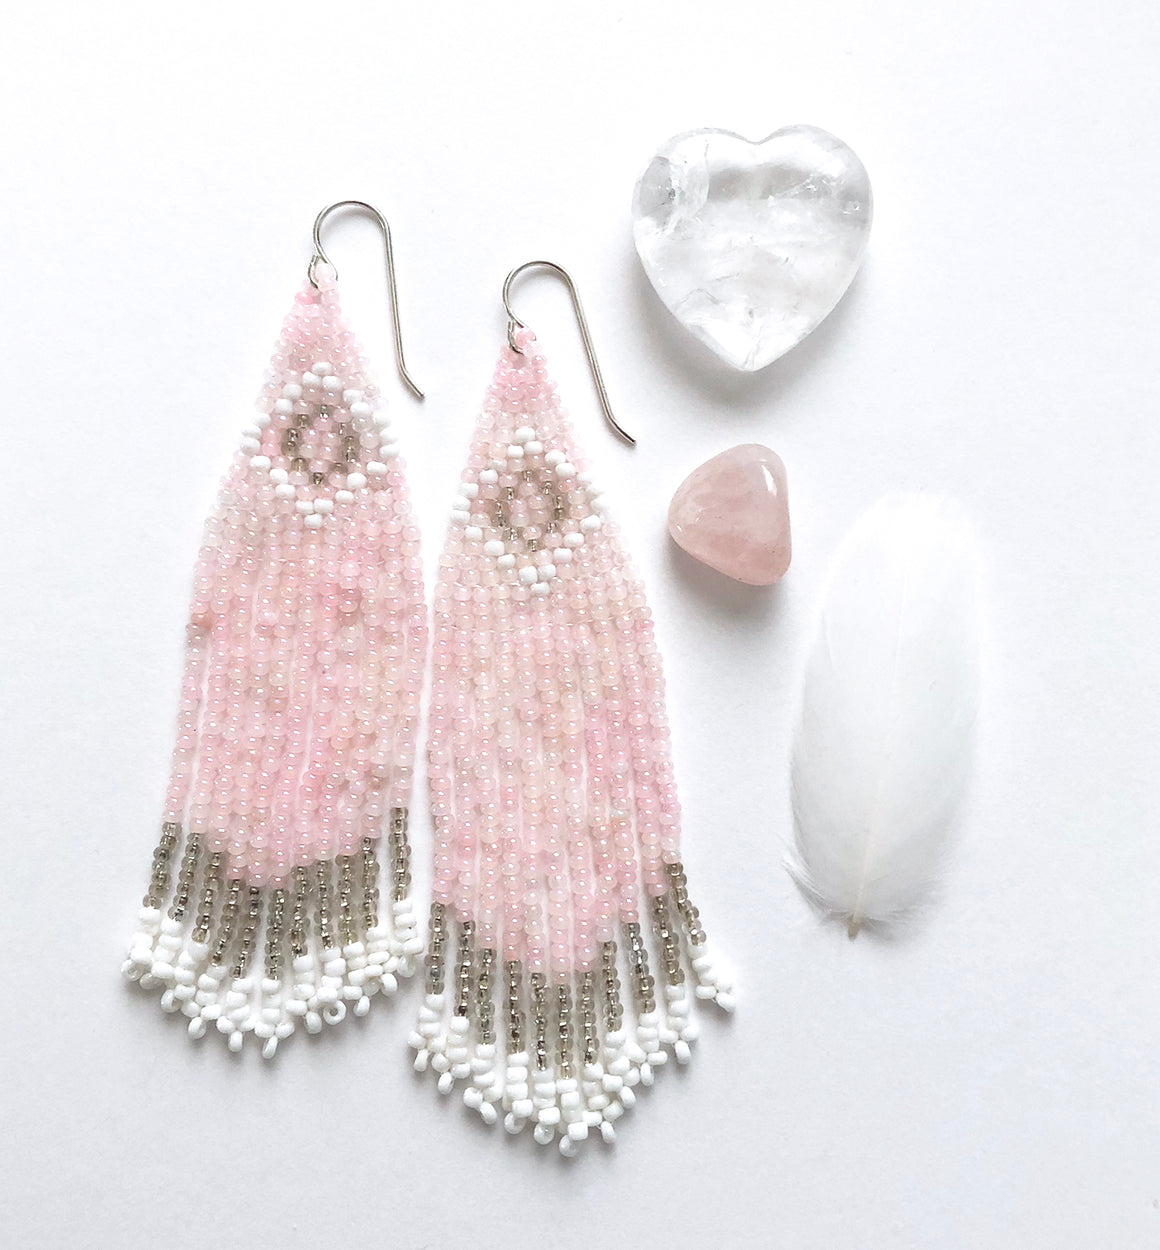 Handmade Pink Seed Bead Fringe Earrings - Art Deco Style with antique blush, white and silver beads